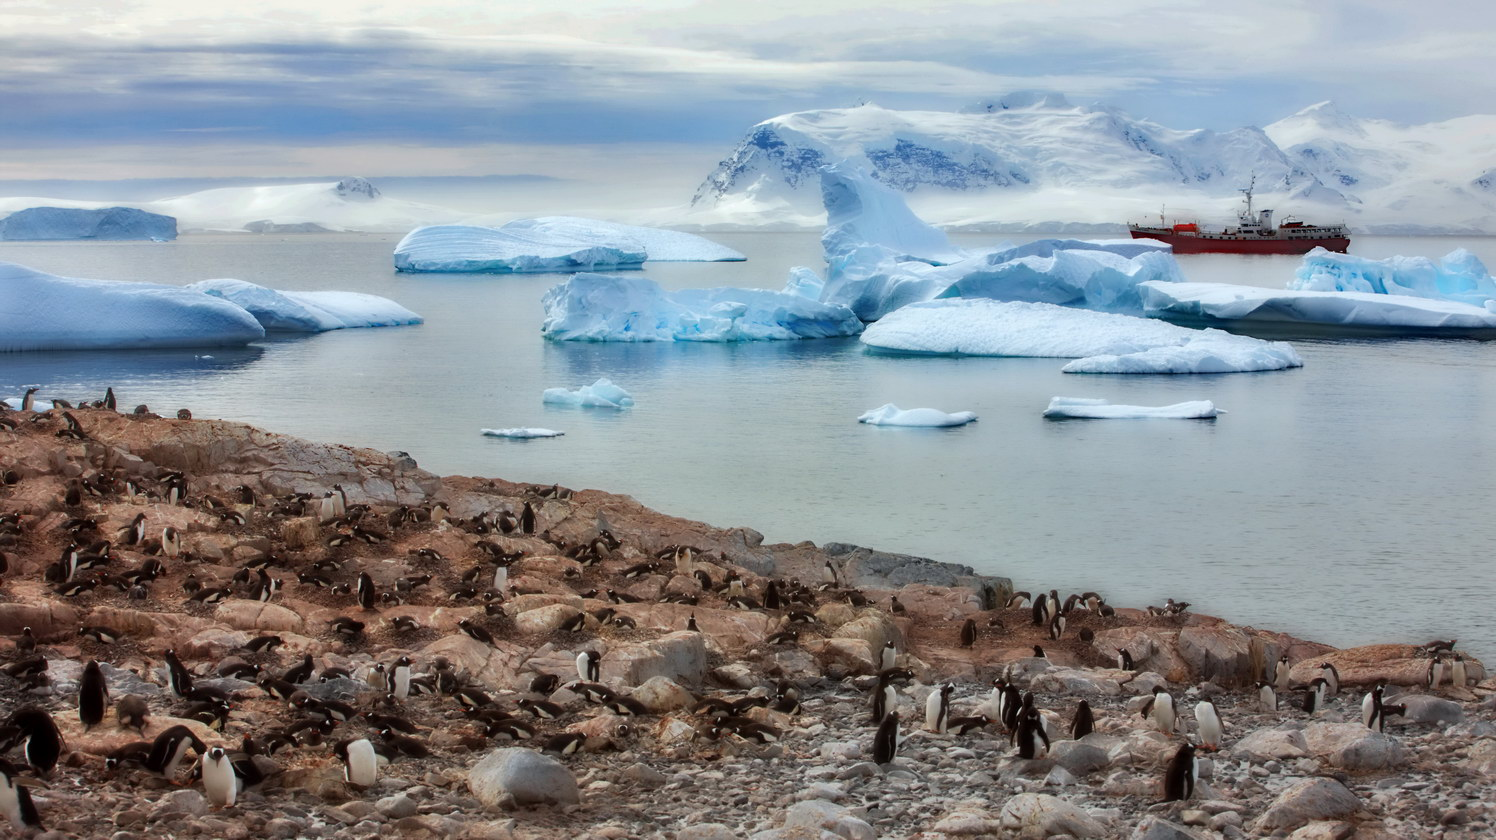 Antarctic, penguins | landscape, outdoor, nature, Antarctic, penguins, water, ice, sky, ship, clouds